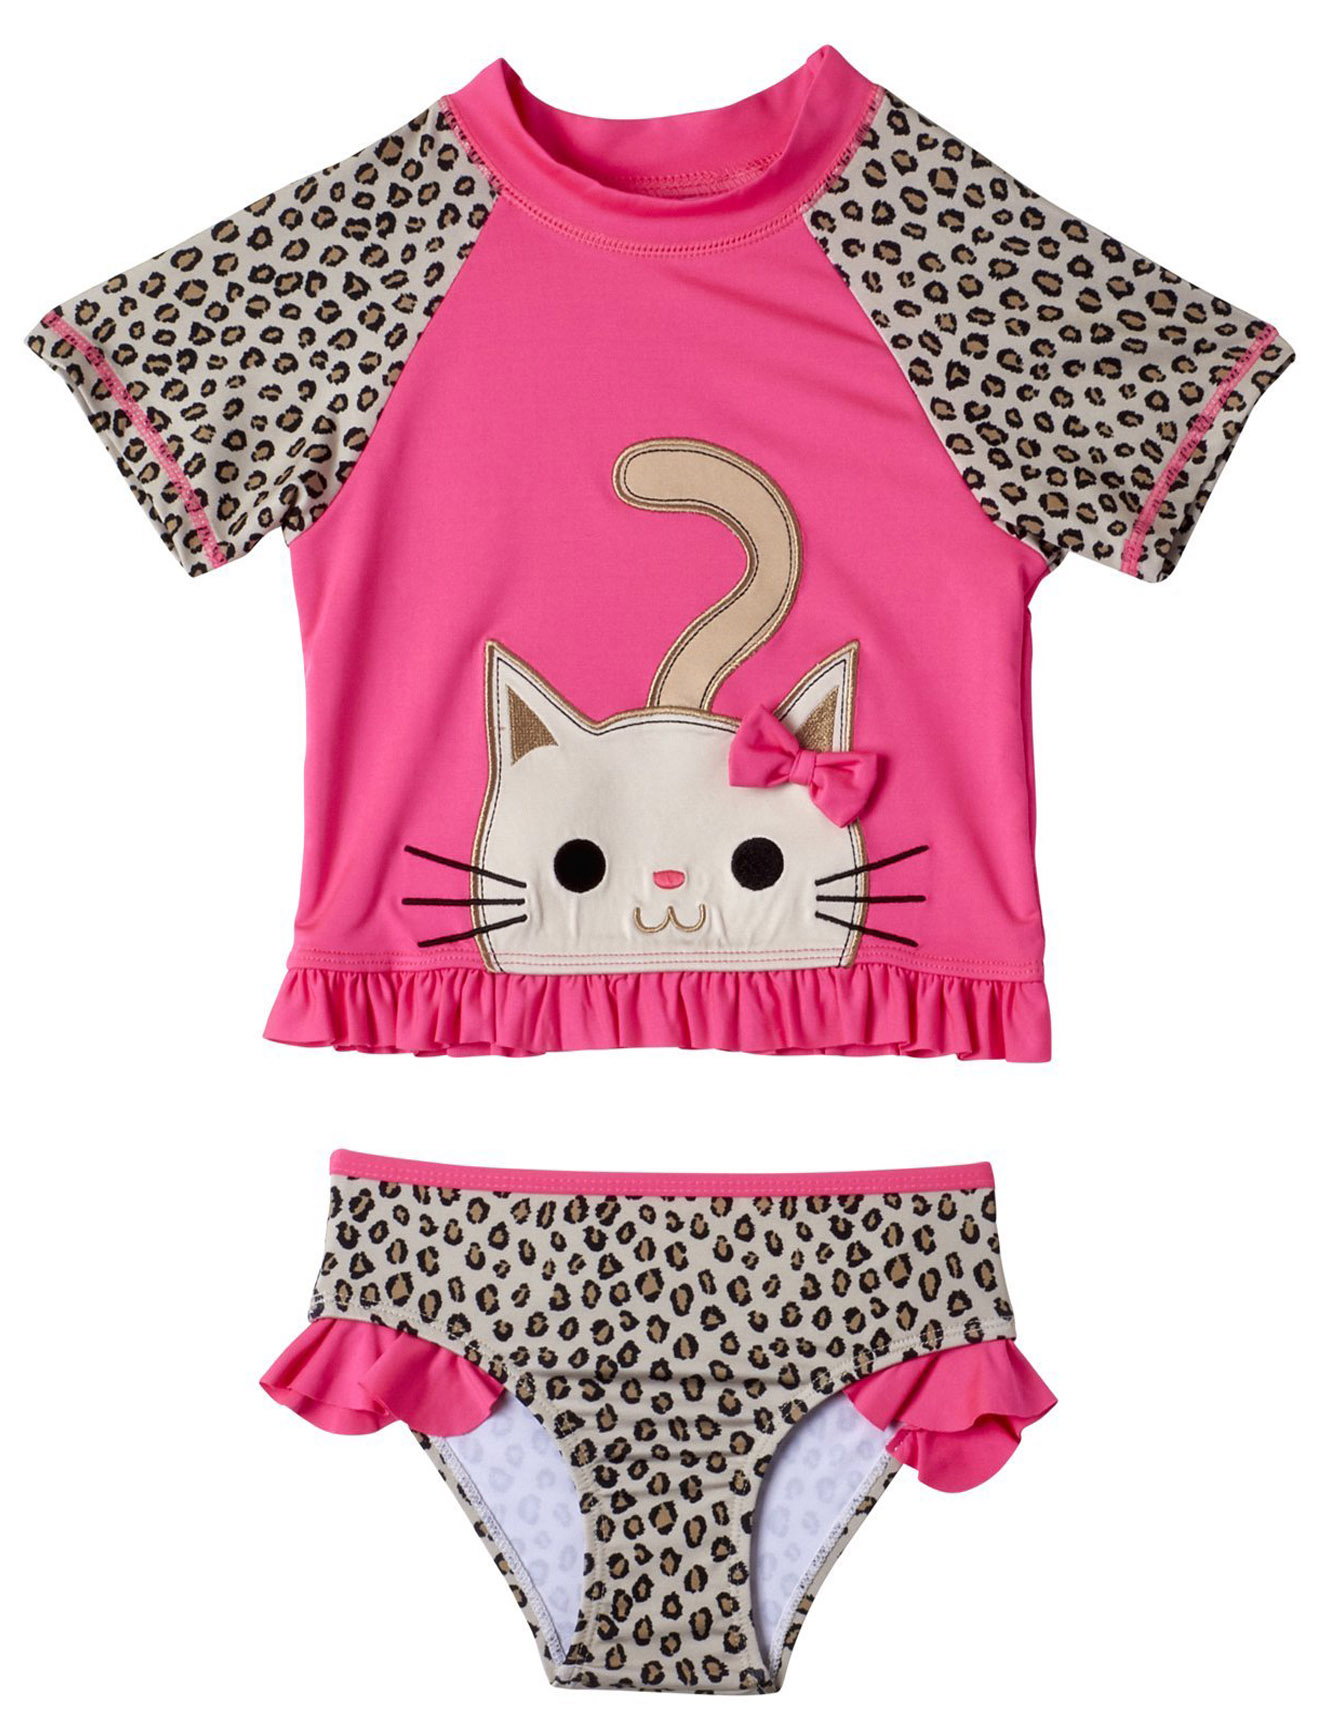 Wippette Baby Girls Cheetah Print 2-Piece Rashguard Sun Protection Swimsuit Set